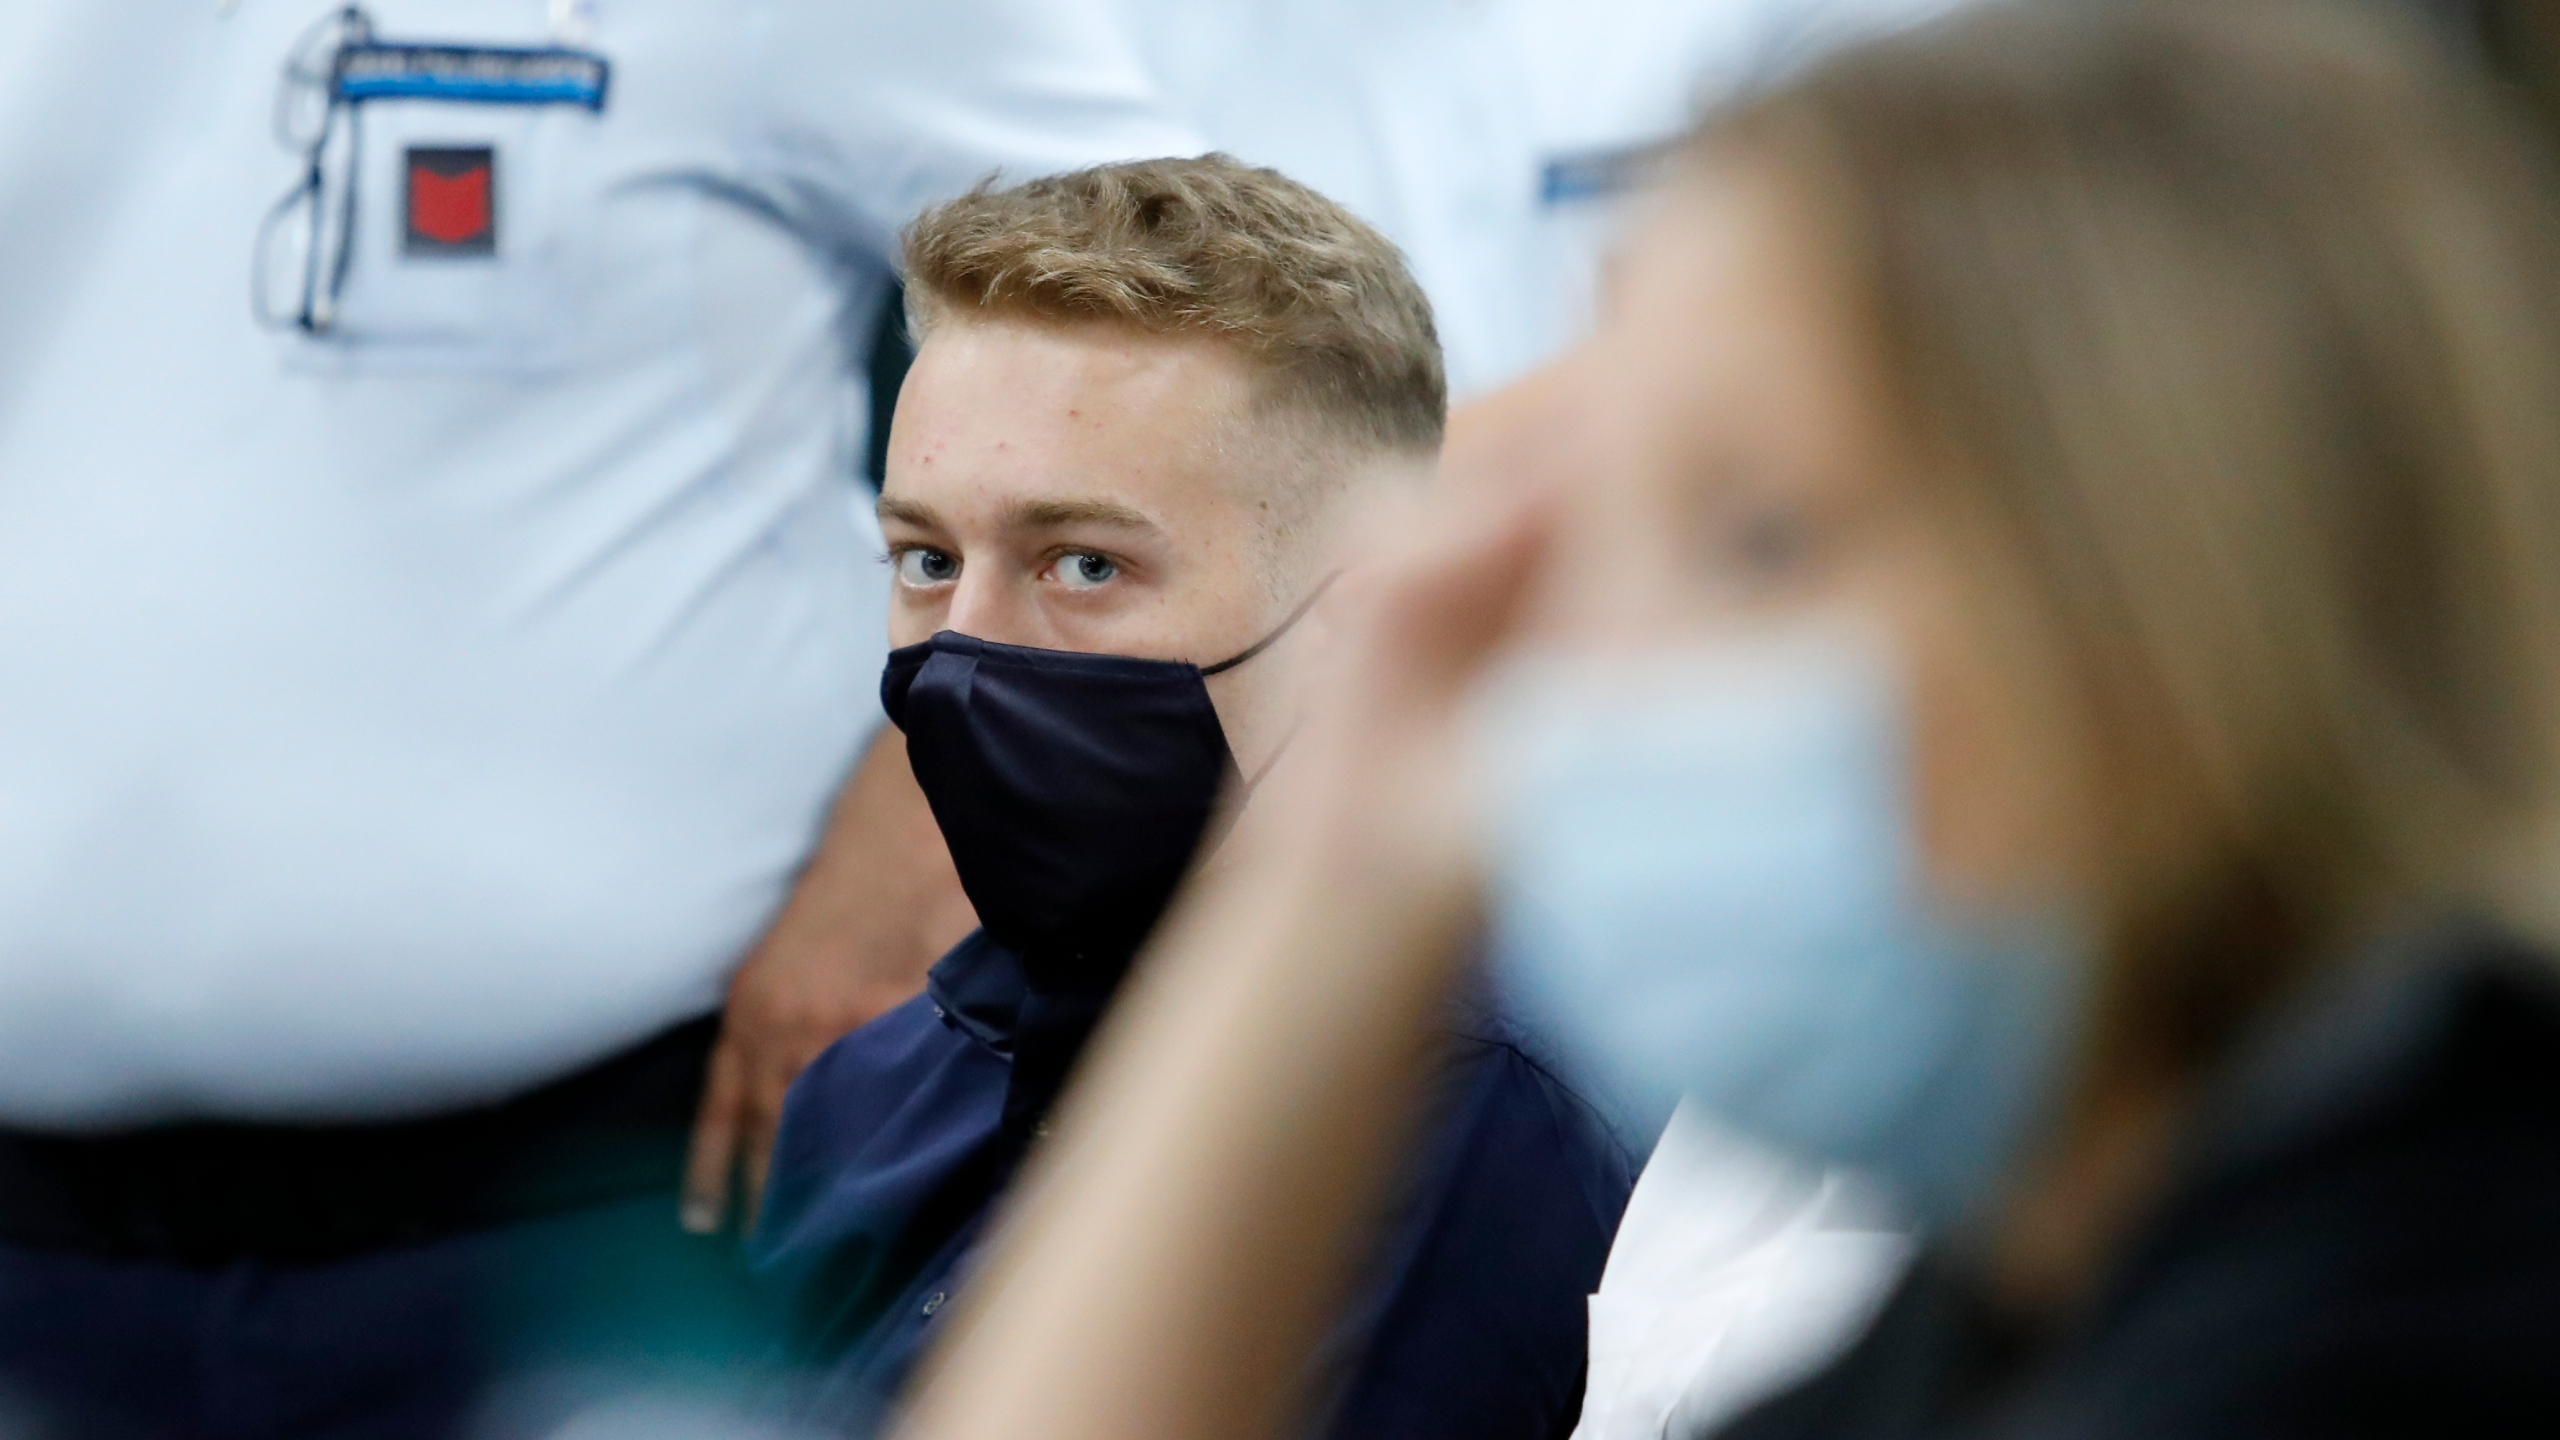 Finnegan Lee Elder, from San Francisco, looks on during a break in his trial where he and his friend Gabriel Natale-Hjorth are accused of slaying a plainclothes Carabinieri officer while on vacation in Italy last summer, in Rome, Wednesday, Sept. 16, 2020. (Remo Casilli/Pool Photo via AP)